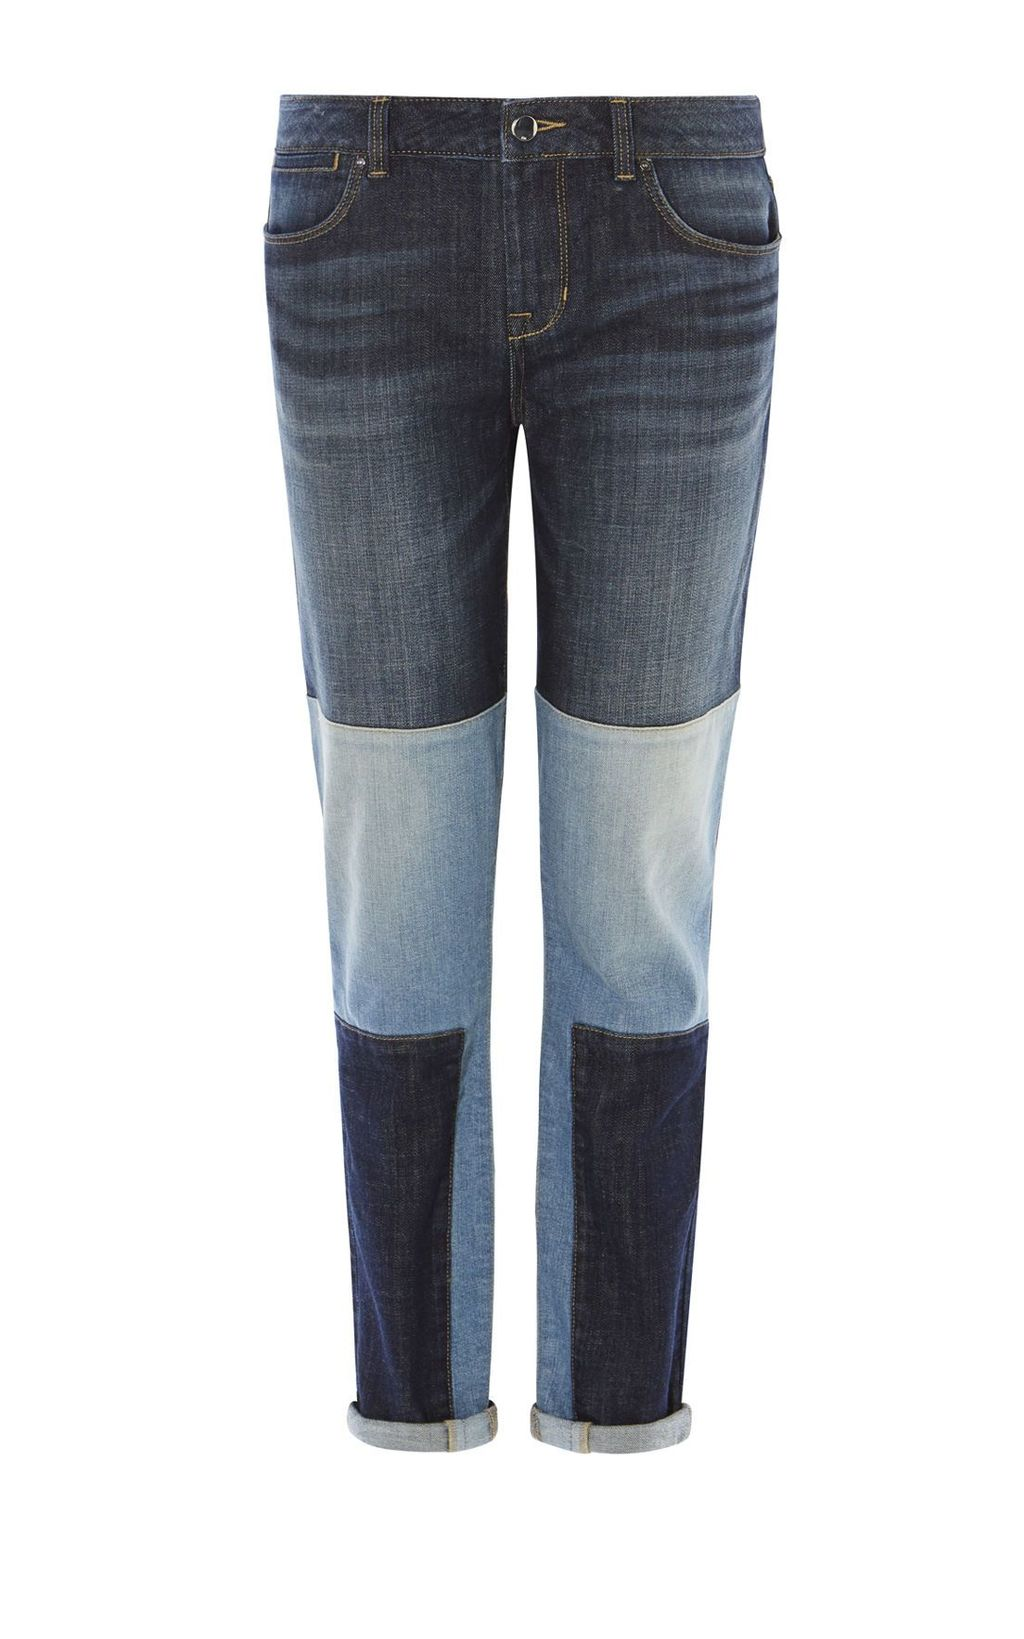 Patchwork Jeans, Denim Indigo - length: standard; pattern: plain; pocket detail: traditional 5 pocket; style: slim leg; waist: mid/regular rise; secondary colour: pale blue; predominant colour: navy; occasions: casual; fibres: cotton - stretch; jeans detail: whiskering; texture group: denim; pattern type: fabric; multicoloured: multicoloured; season: s/s 2016; wardrobe: basic